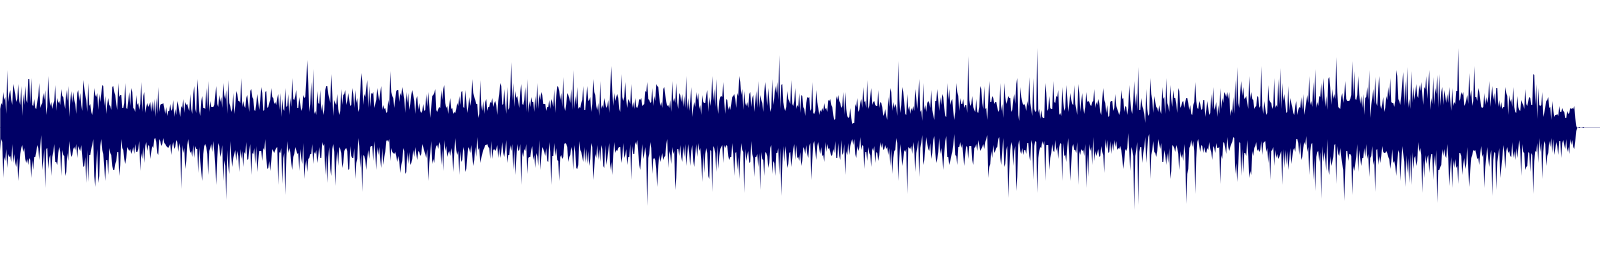 waveform of track #131745